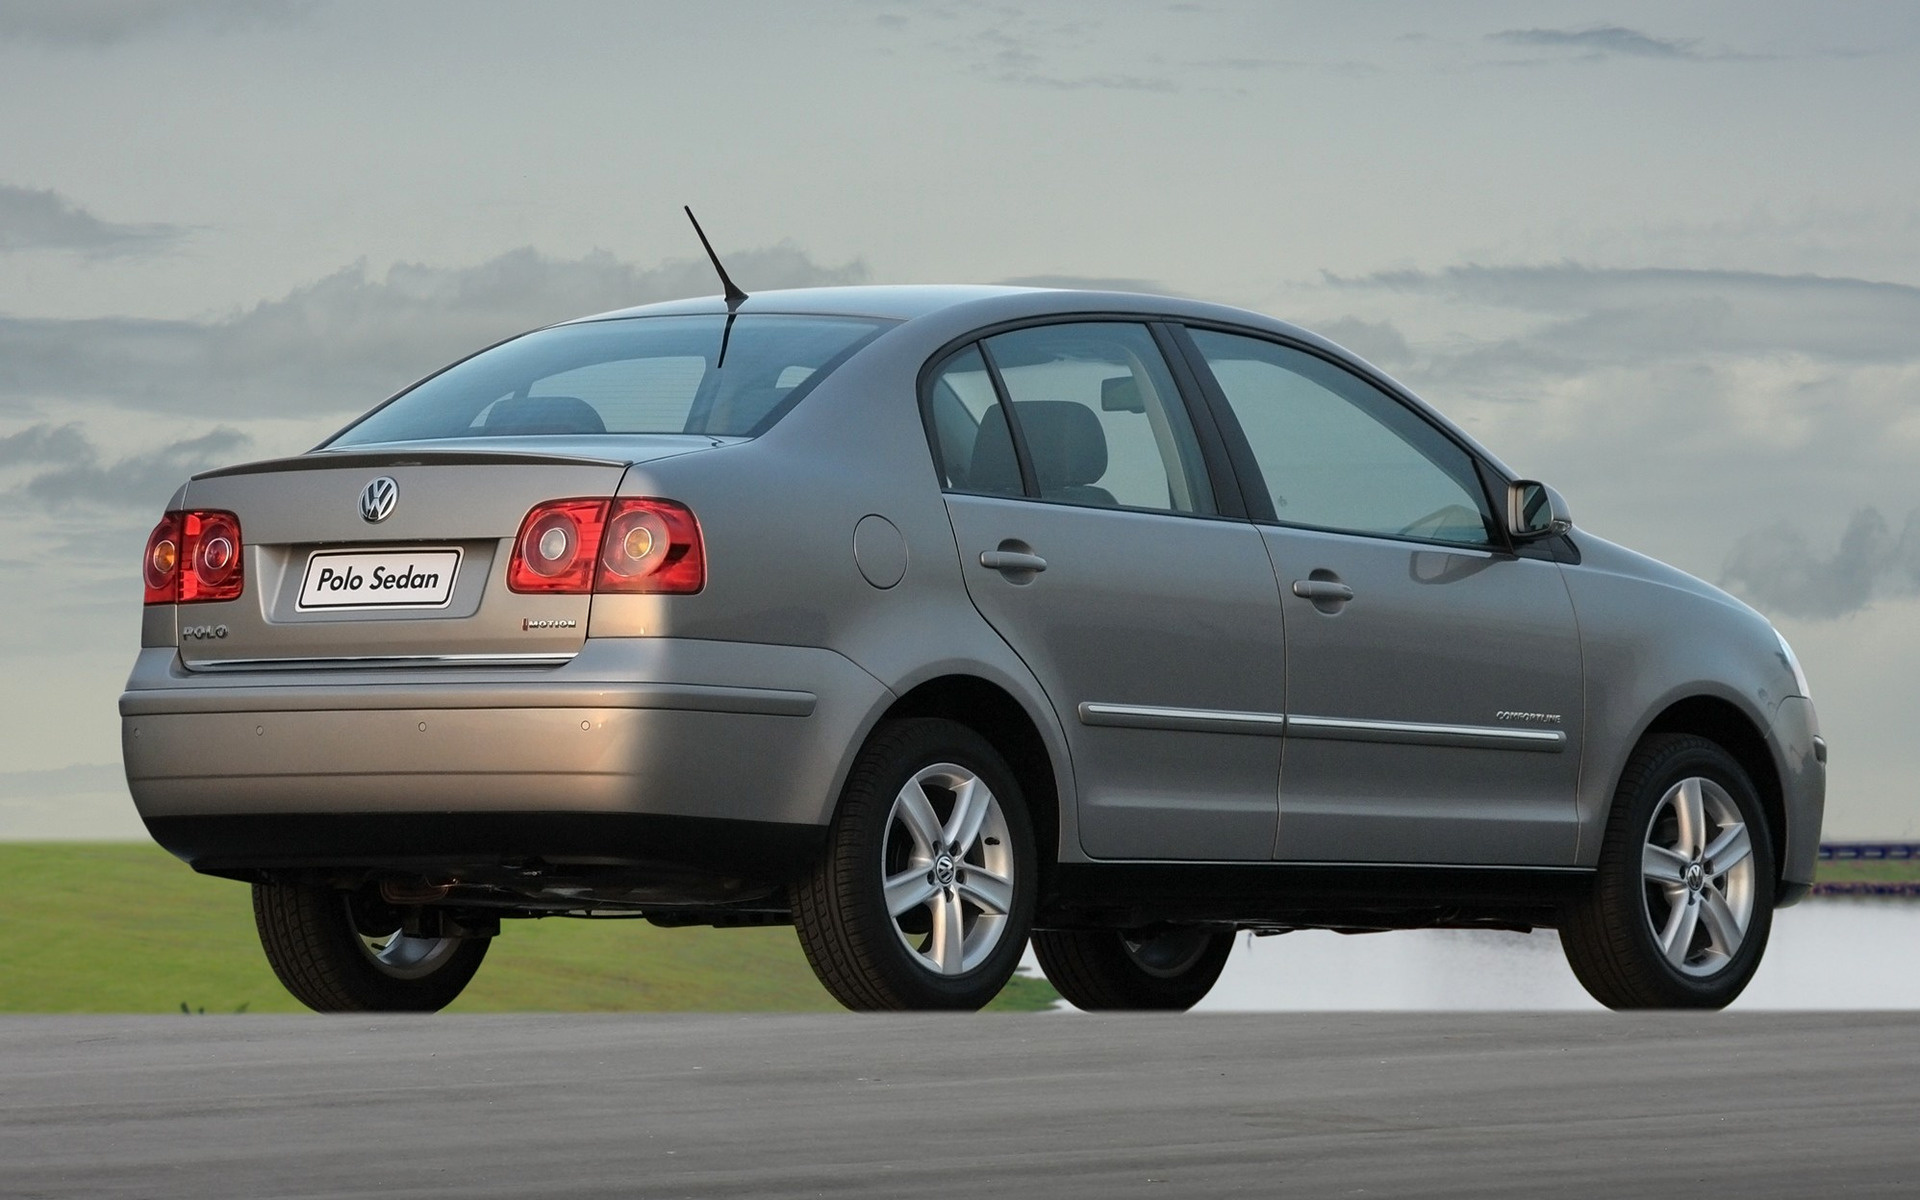 2006 Volkswagen Polo Sedan (BR) - Wallpapers and HD Images ...